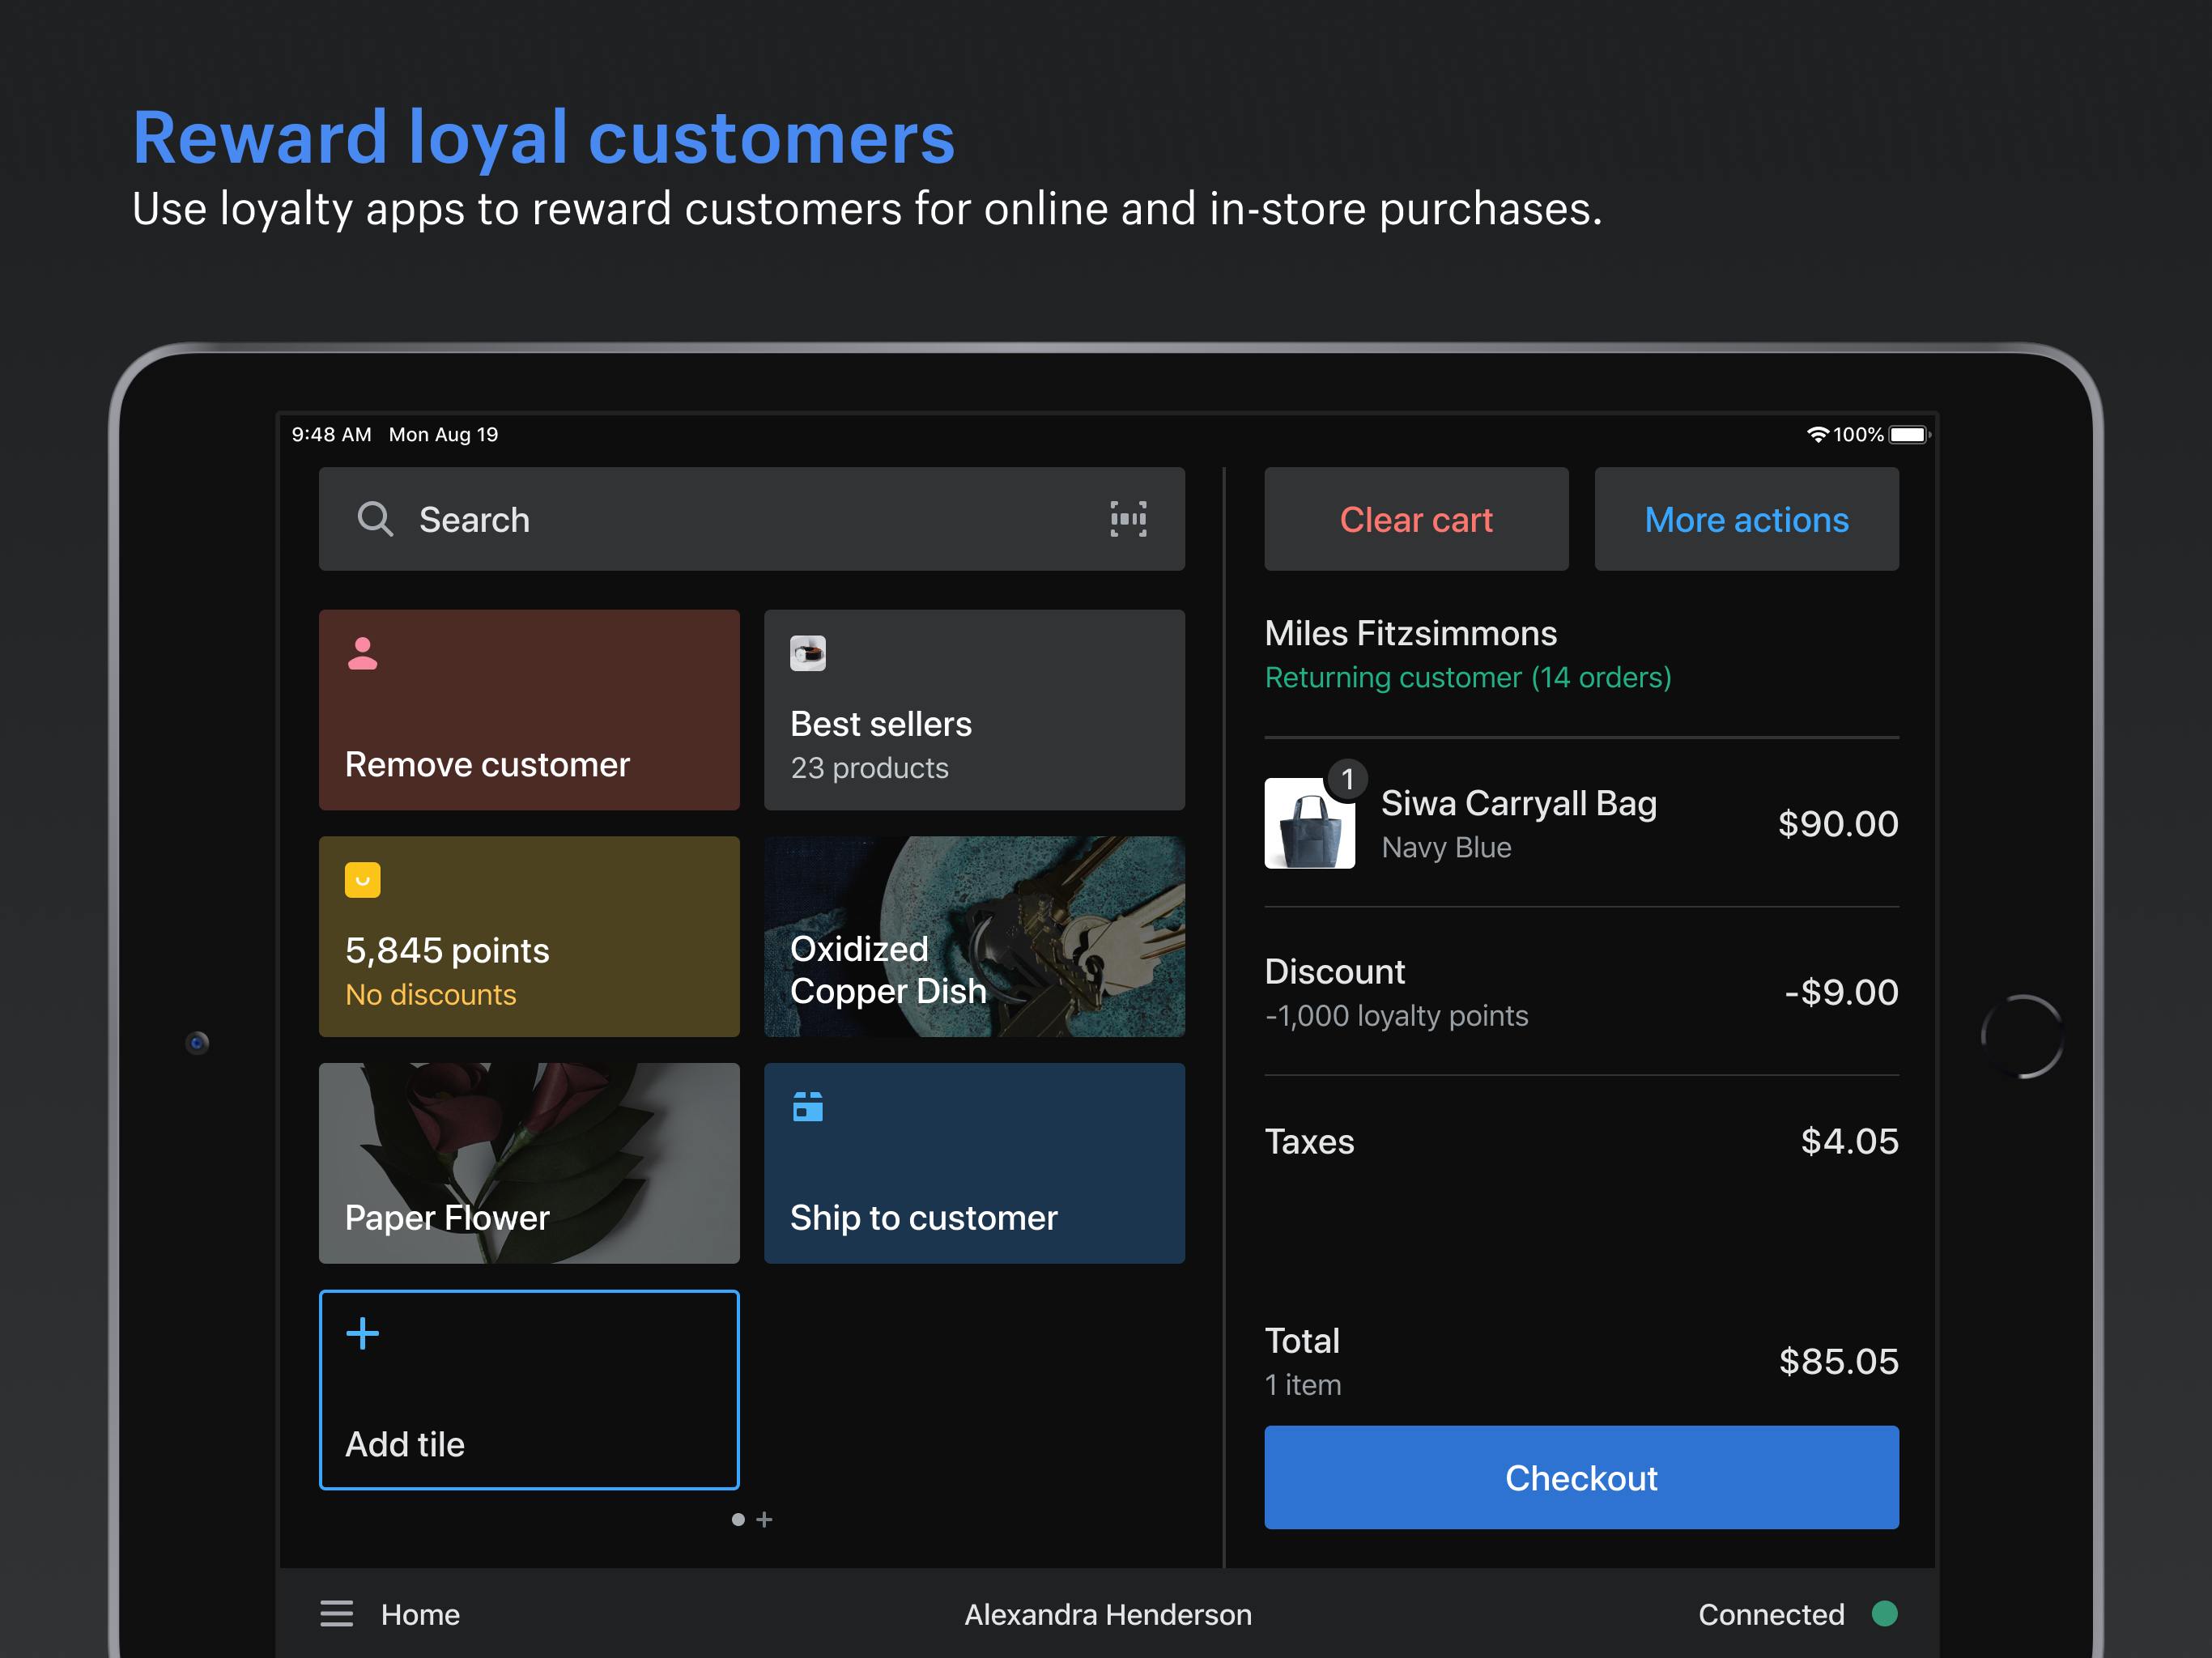 Reward your loyal customers with a variety of loyalty apps to choose from. No matter whether they buy online or in-store, ensure their loyalty is captured and rewarded.